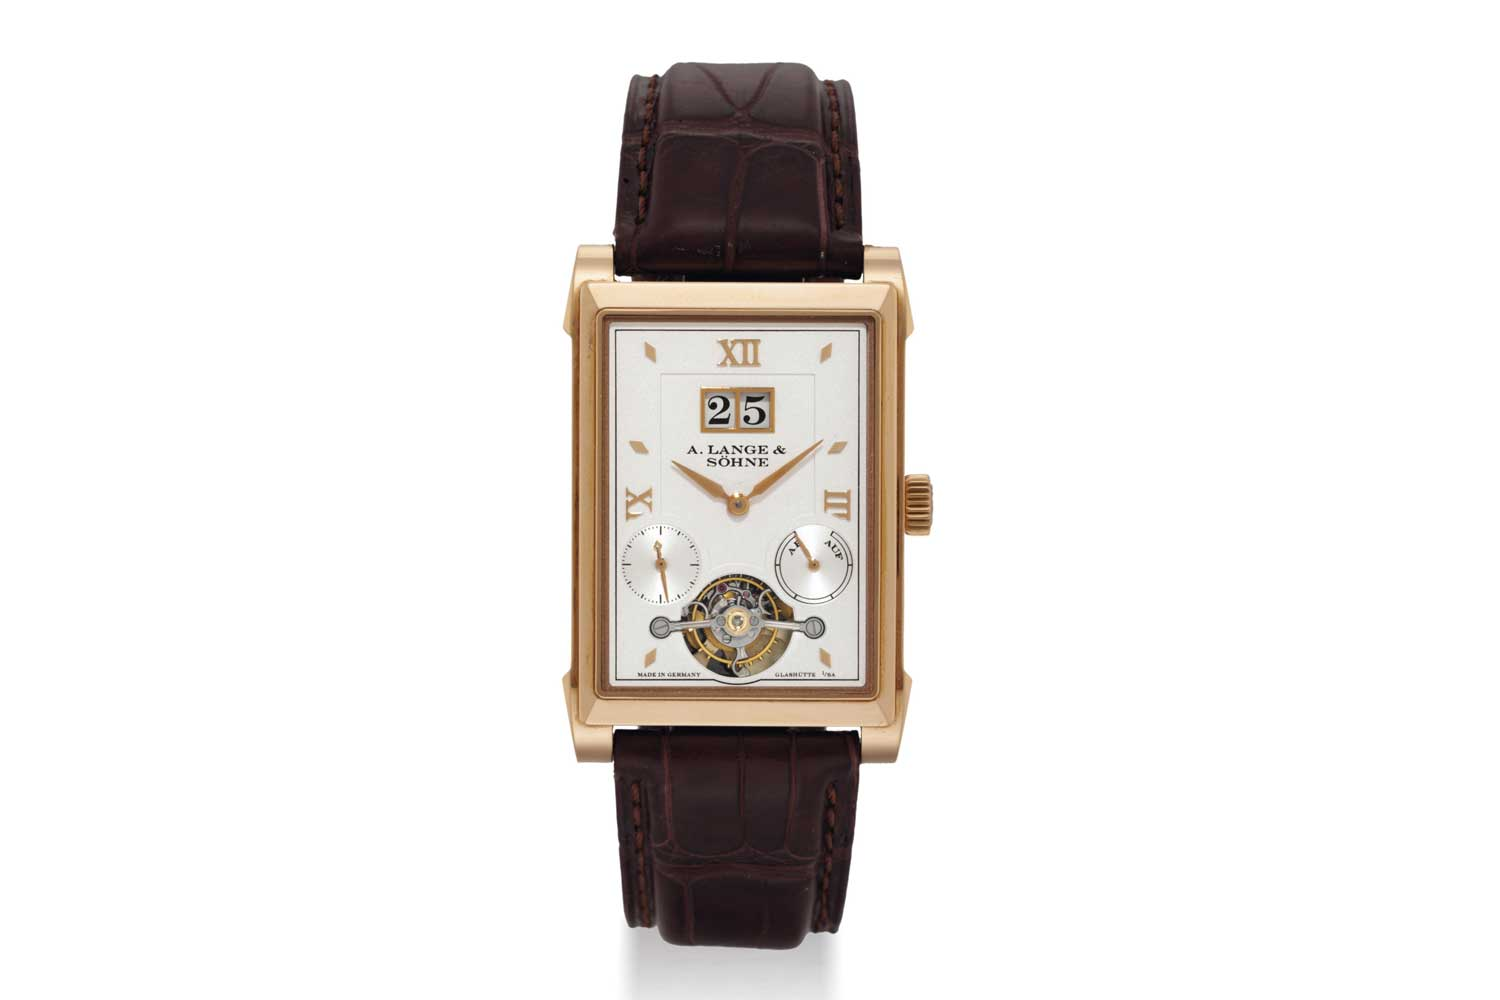 A. Lange & Söhne launched the Cabaret Tourbillon in 2008, in pink gold and platinum, and with it the calibre L042.1 which showcased Lange's one-minute tourbillon with a patented stop seconds mechanism (Image: christies.com)